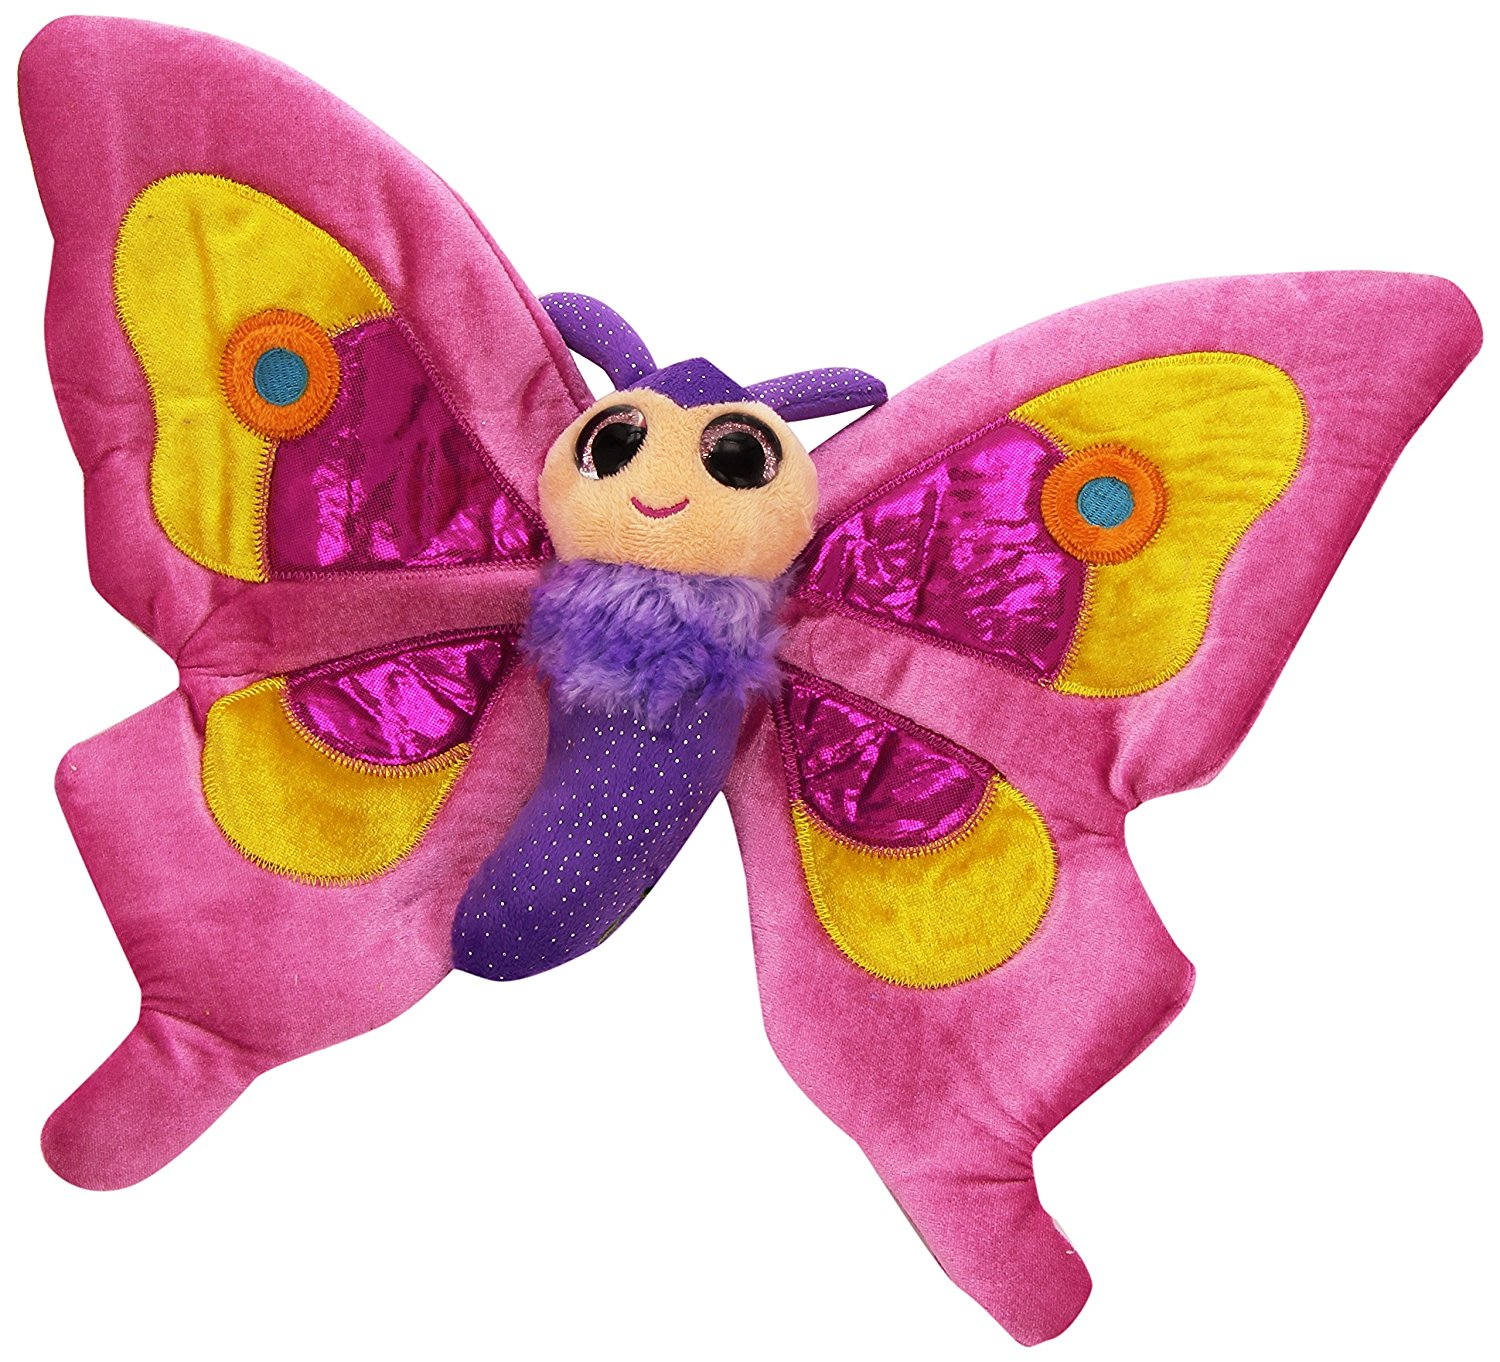 Sweet&sassy Butterfly Pink 38cm, Colourful Design By Sweet Sassy by